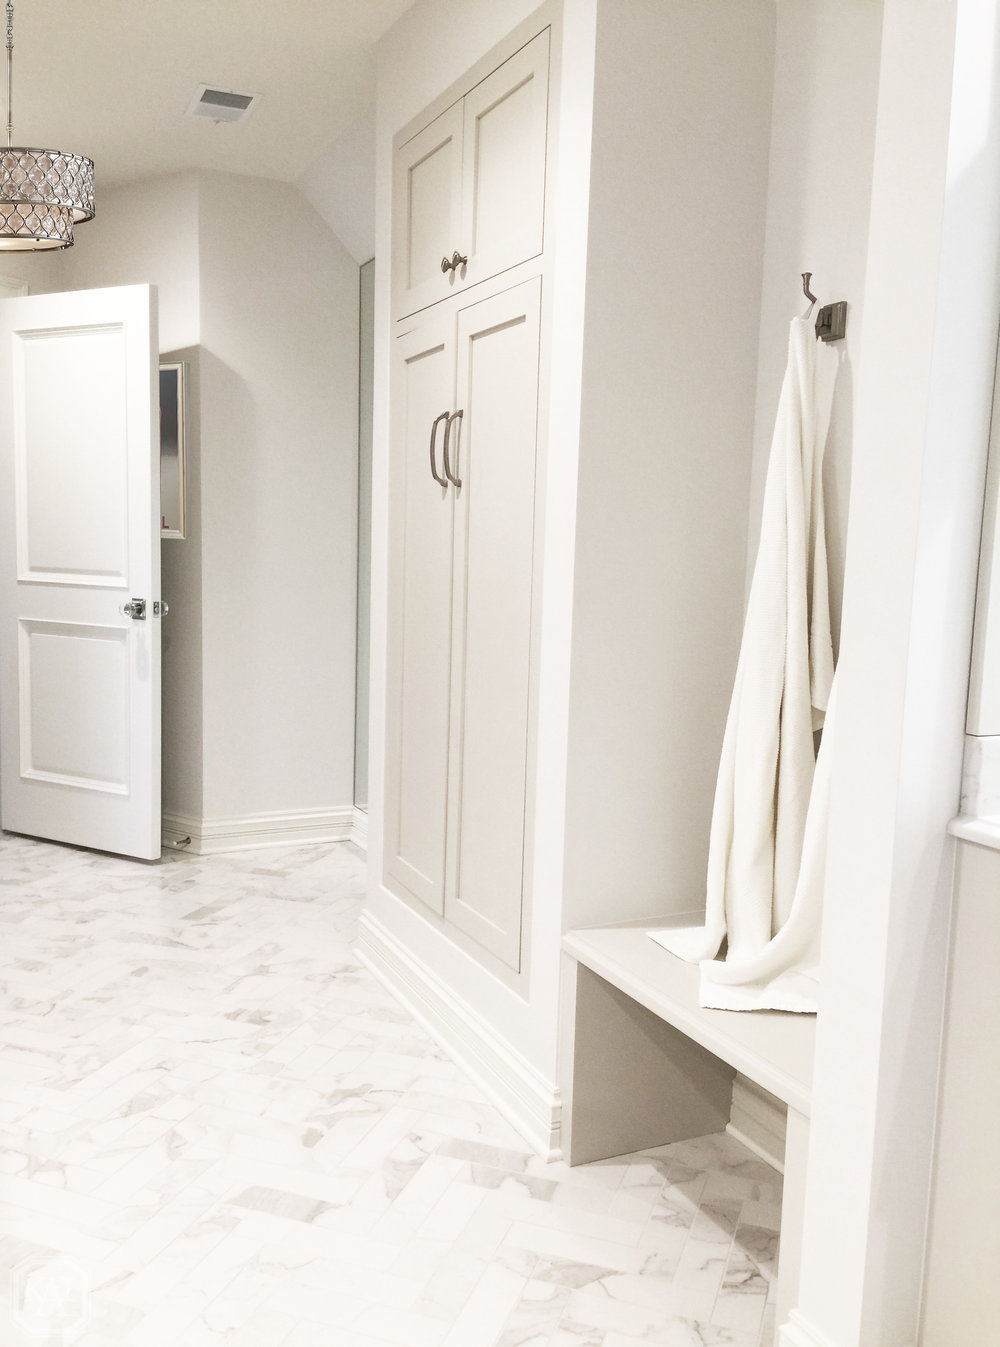 ZITELLA GIRLS BATHROOM LINEN CLOSET_1_FINAL EDIT.jpg